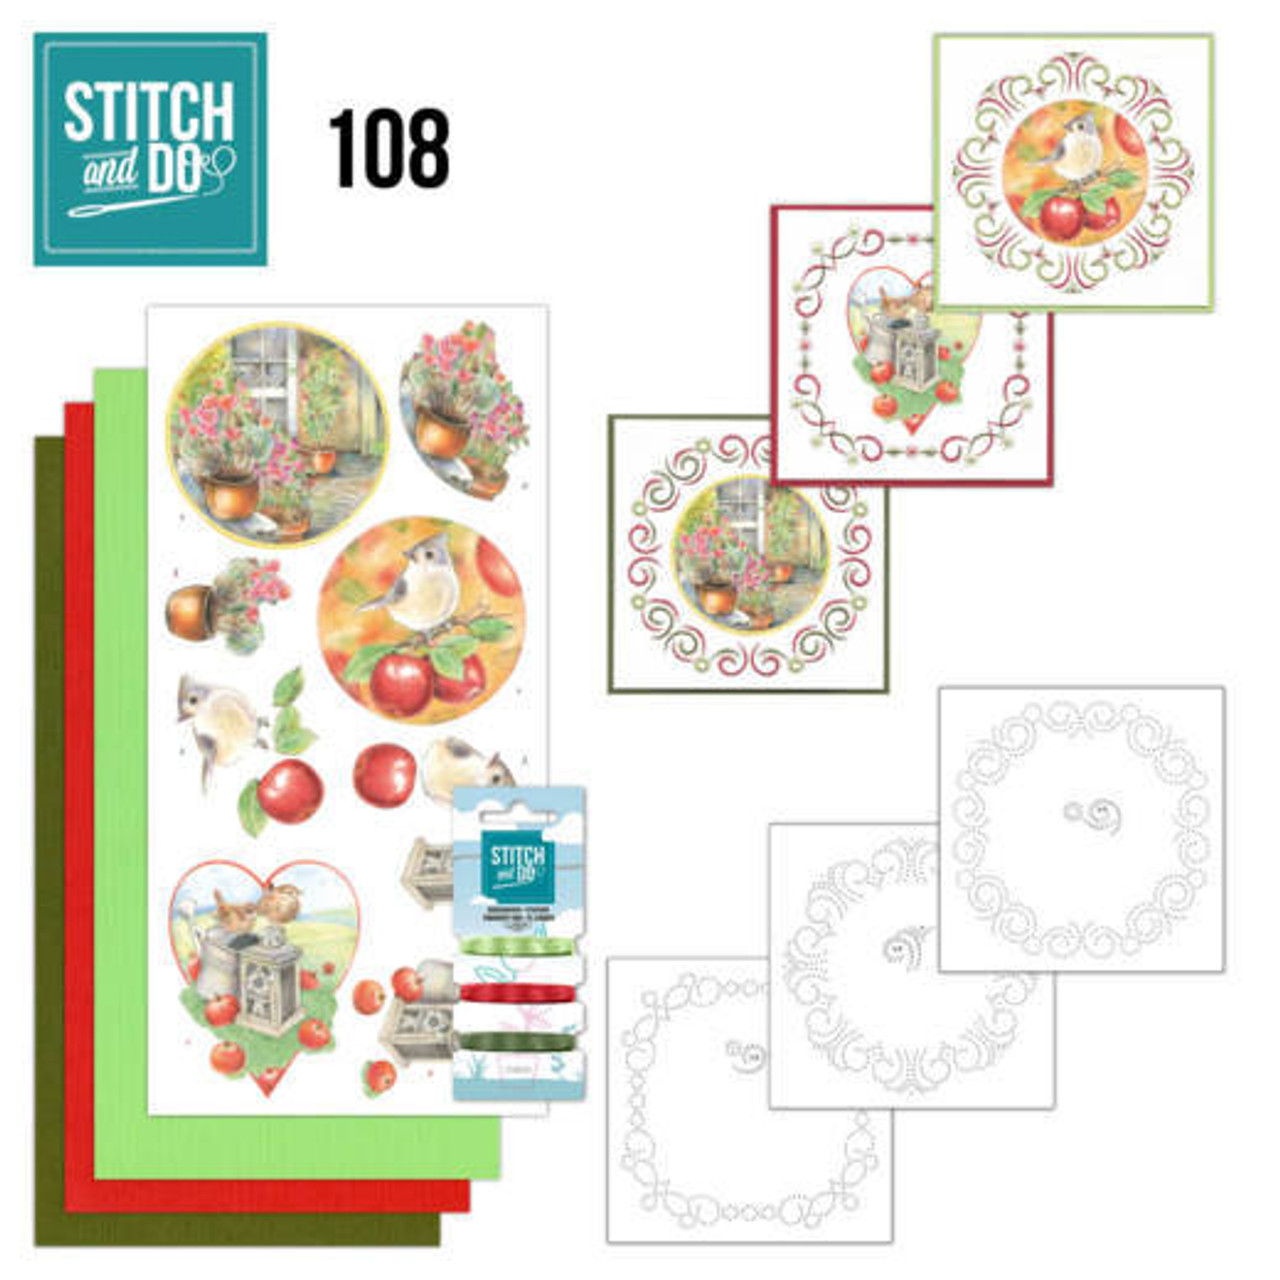 Stitch and Do 108 - Card Embroidery Kit - Outdoor Beauty